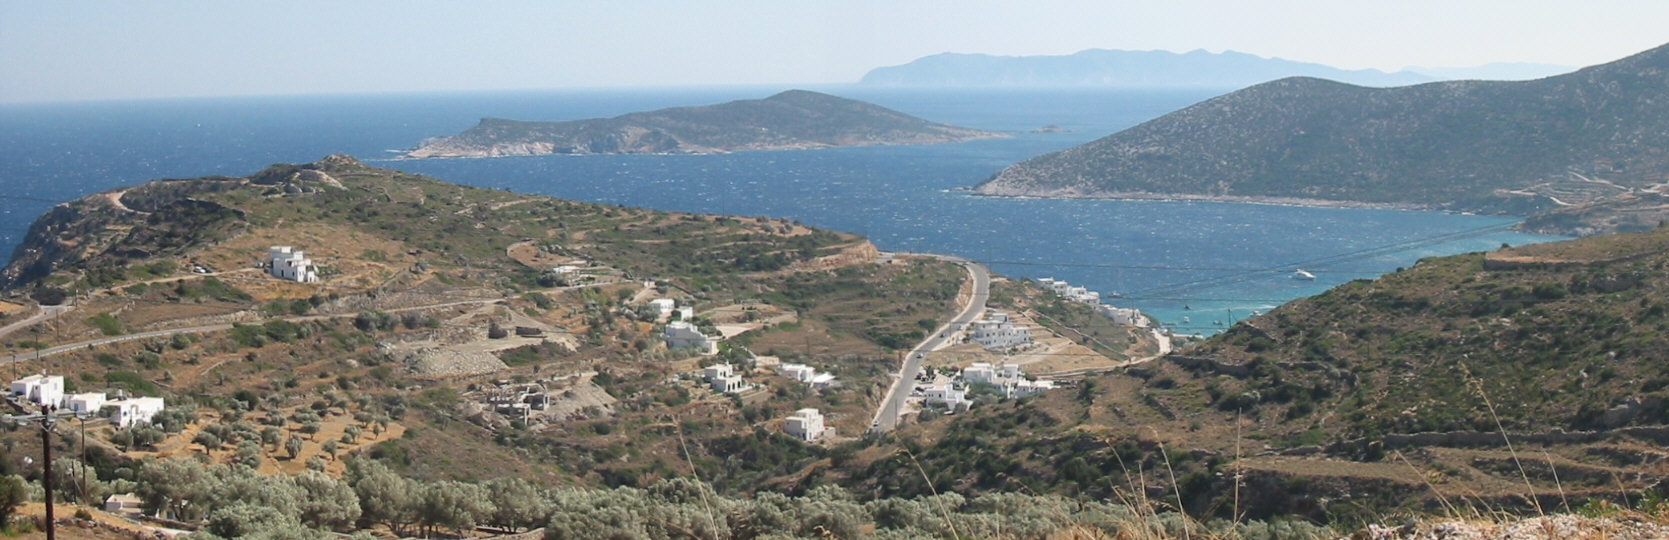 Sifnos  Milos in the distance